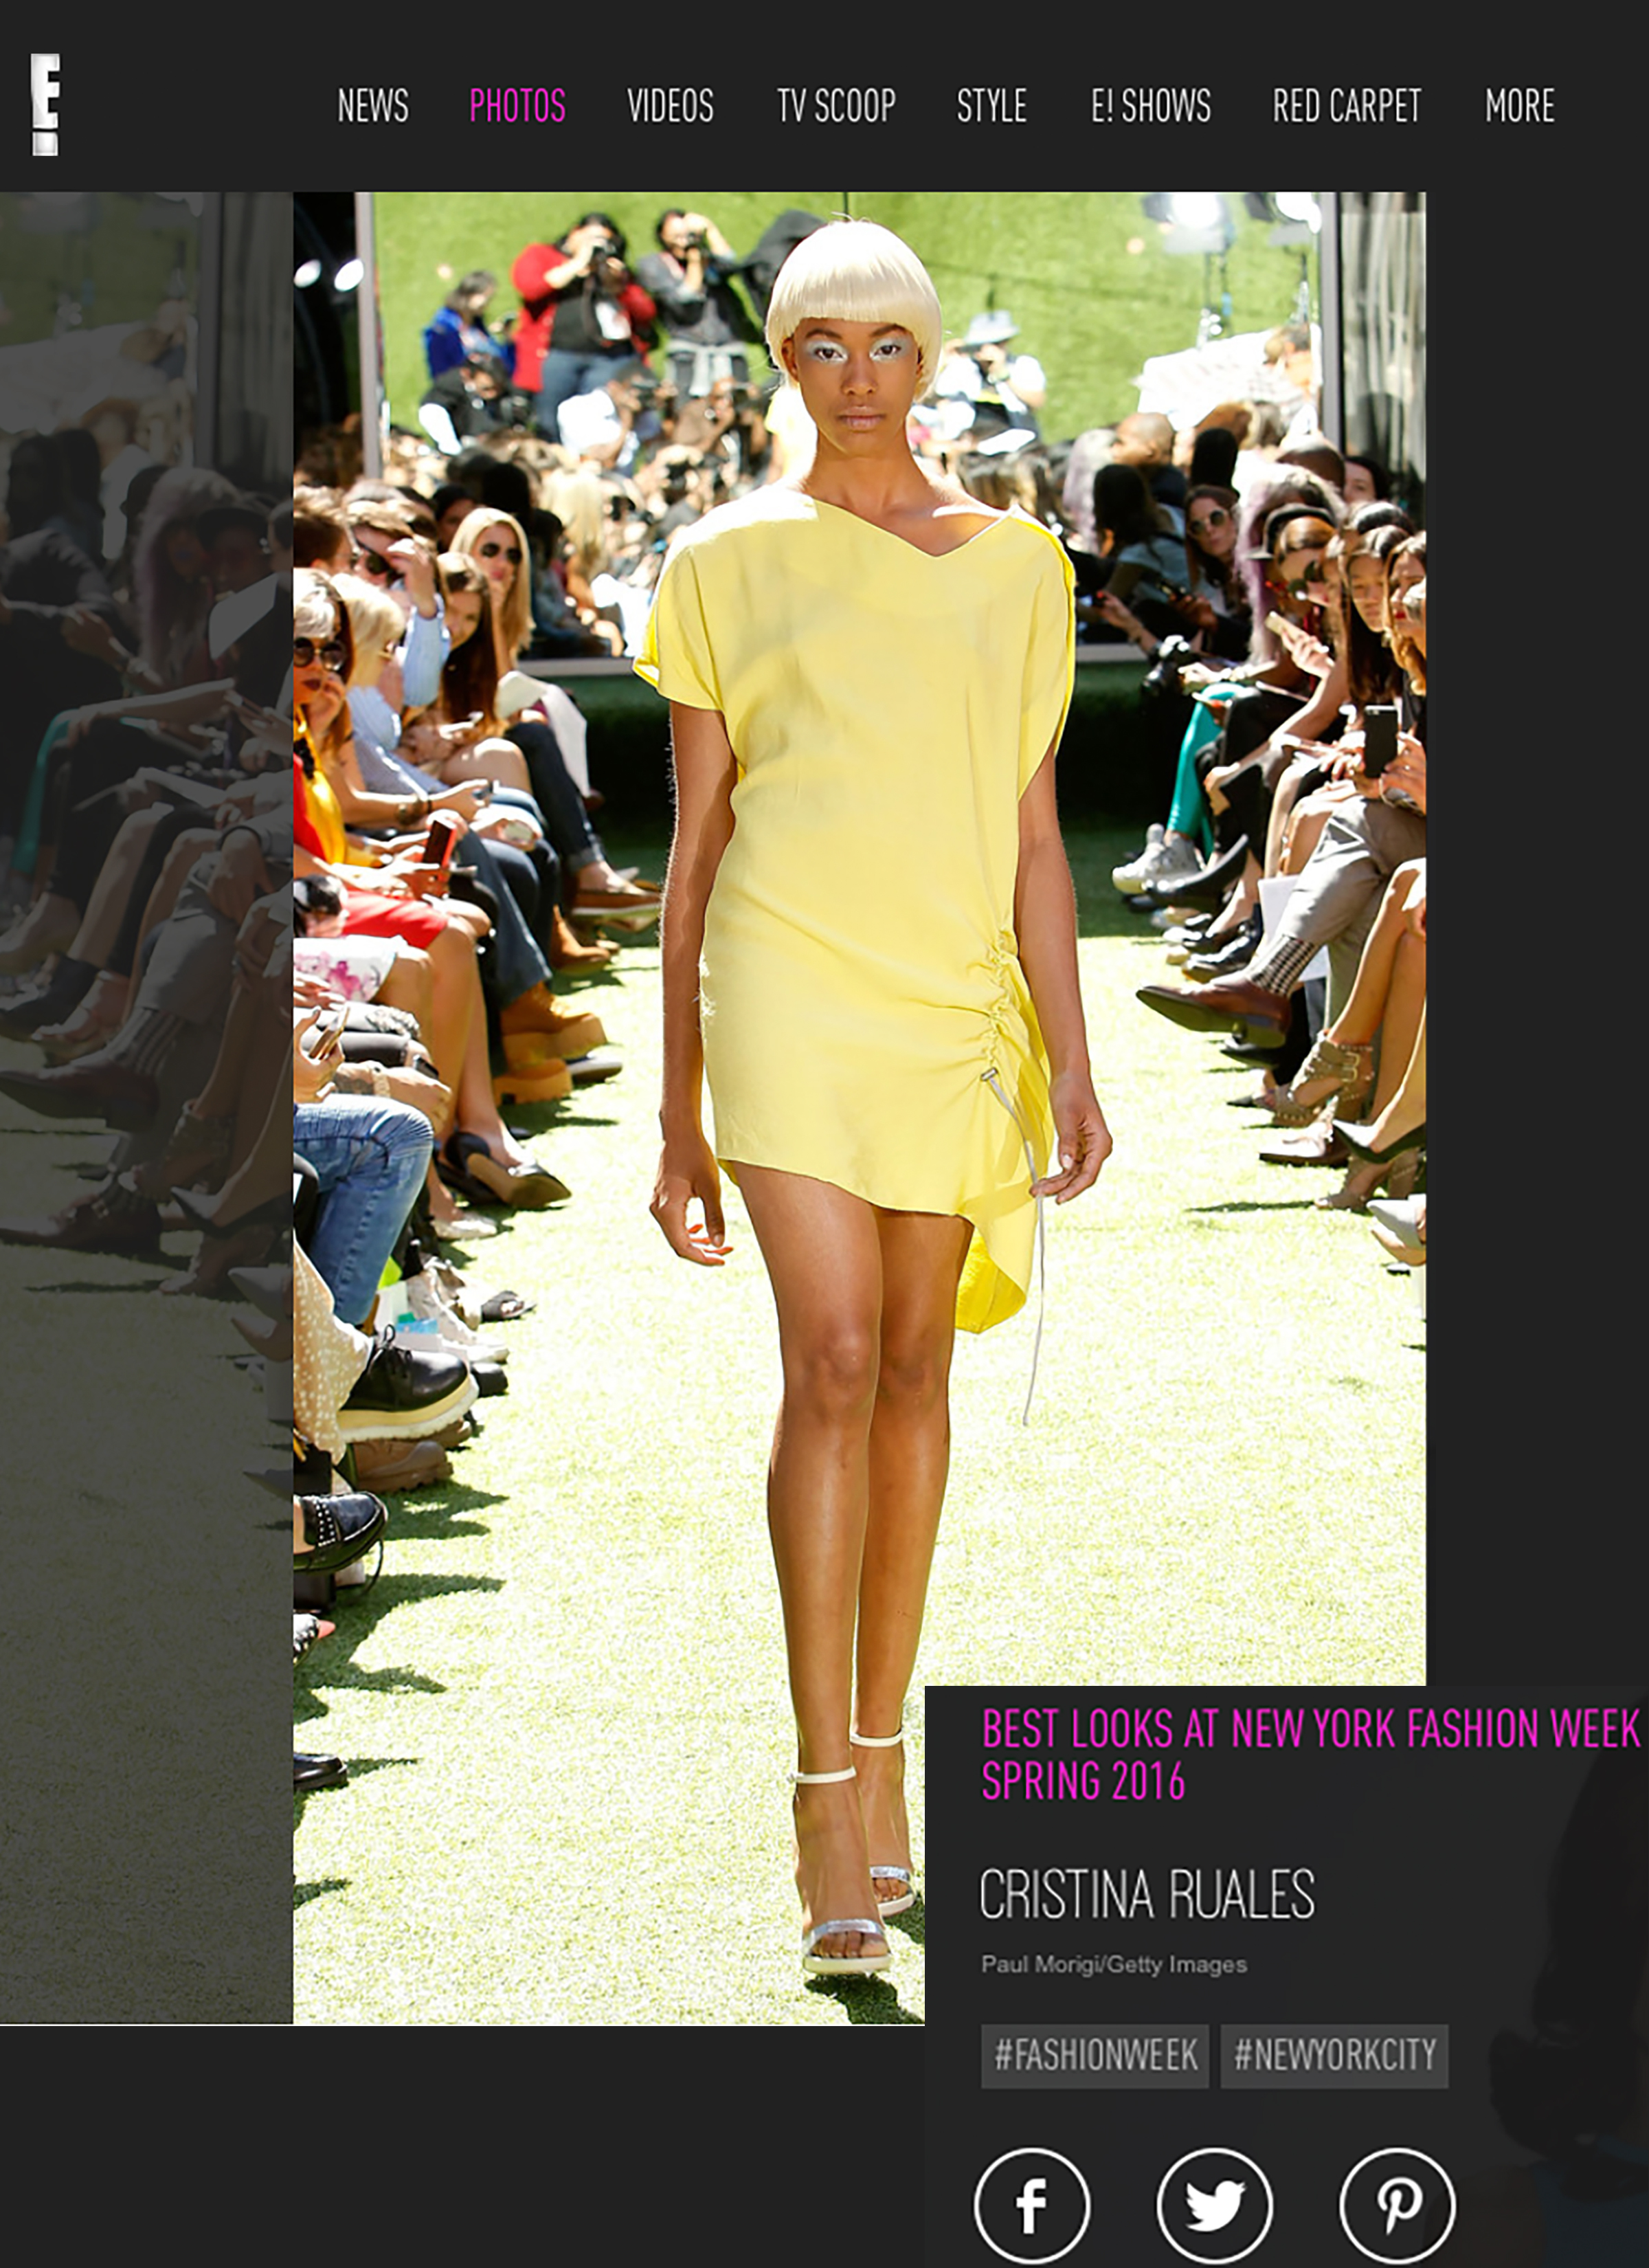 E! News: Best Looks at NYFW Spring 2